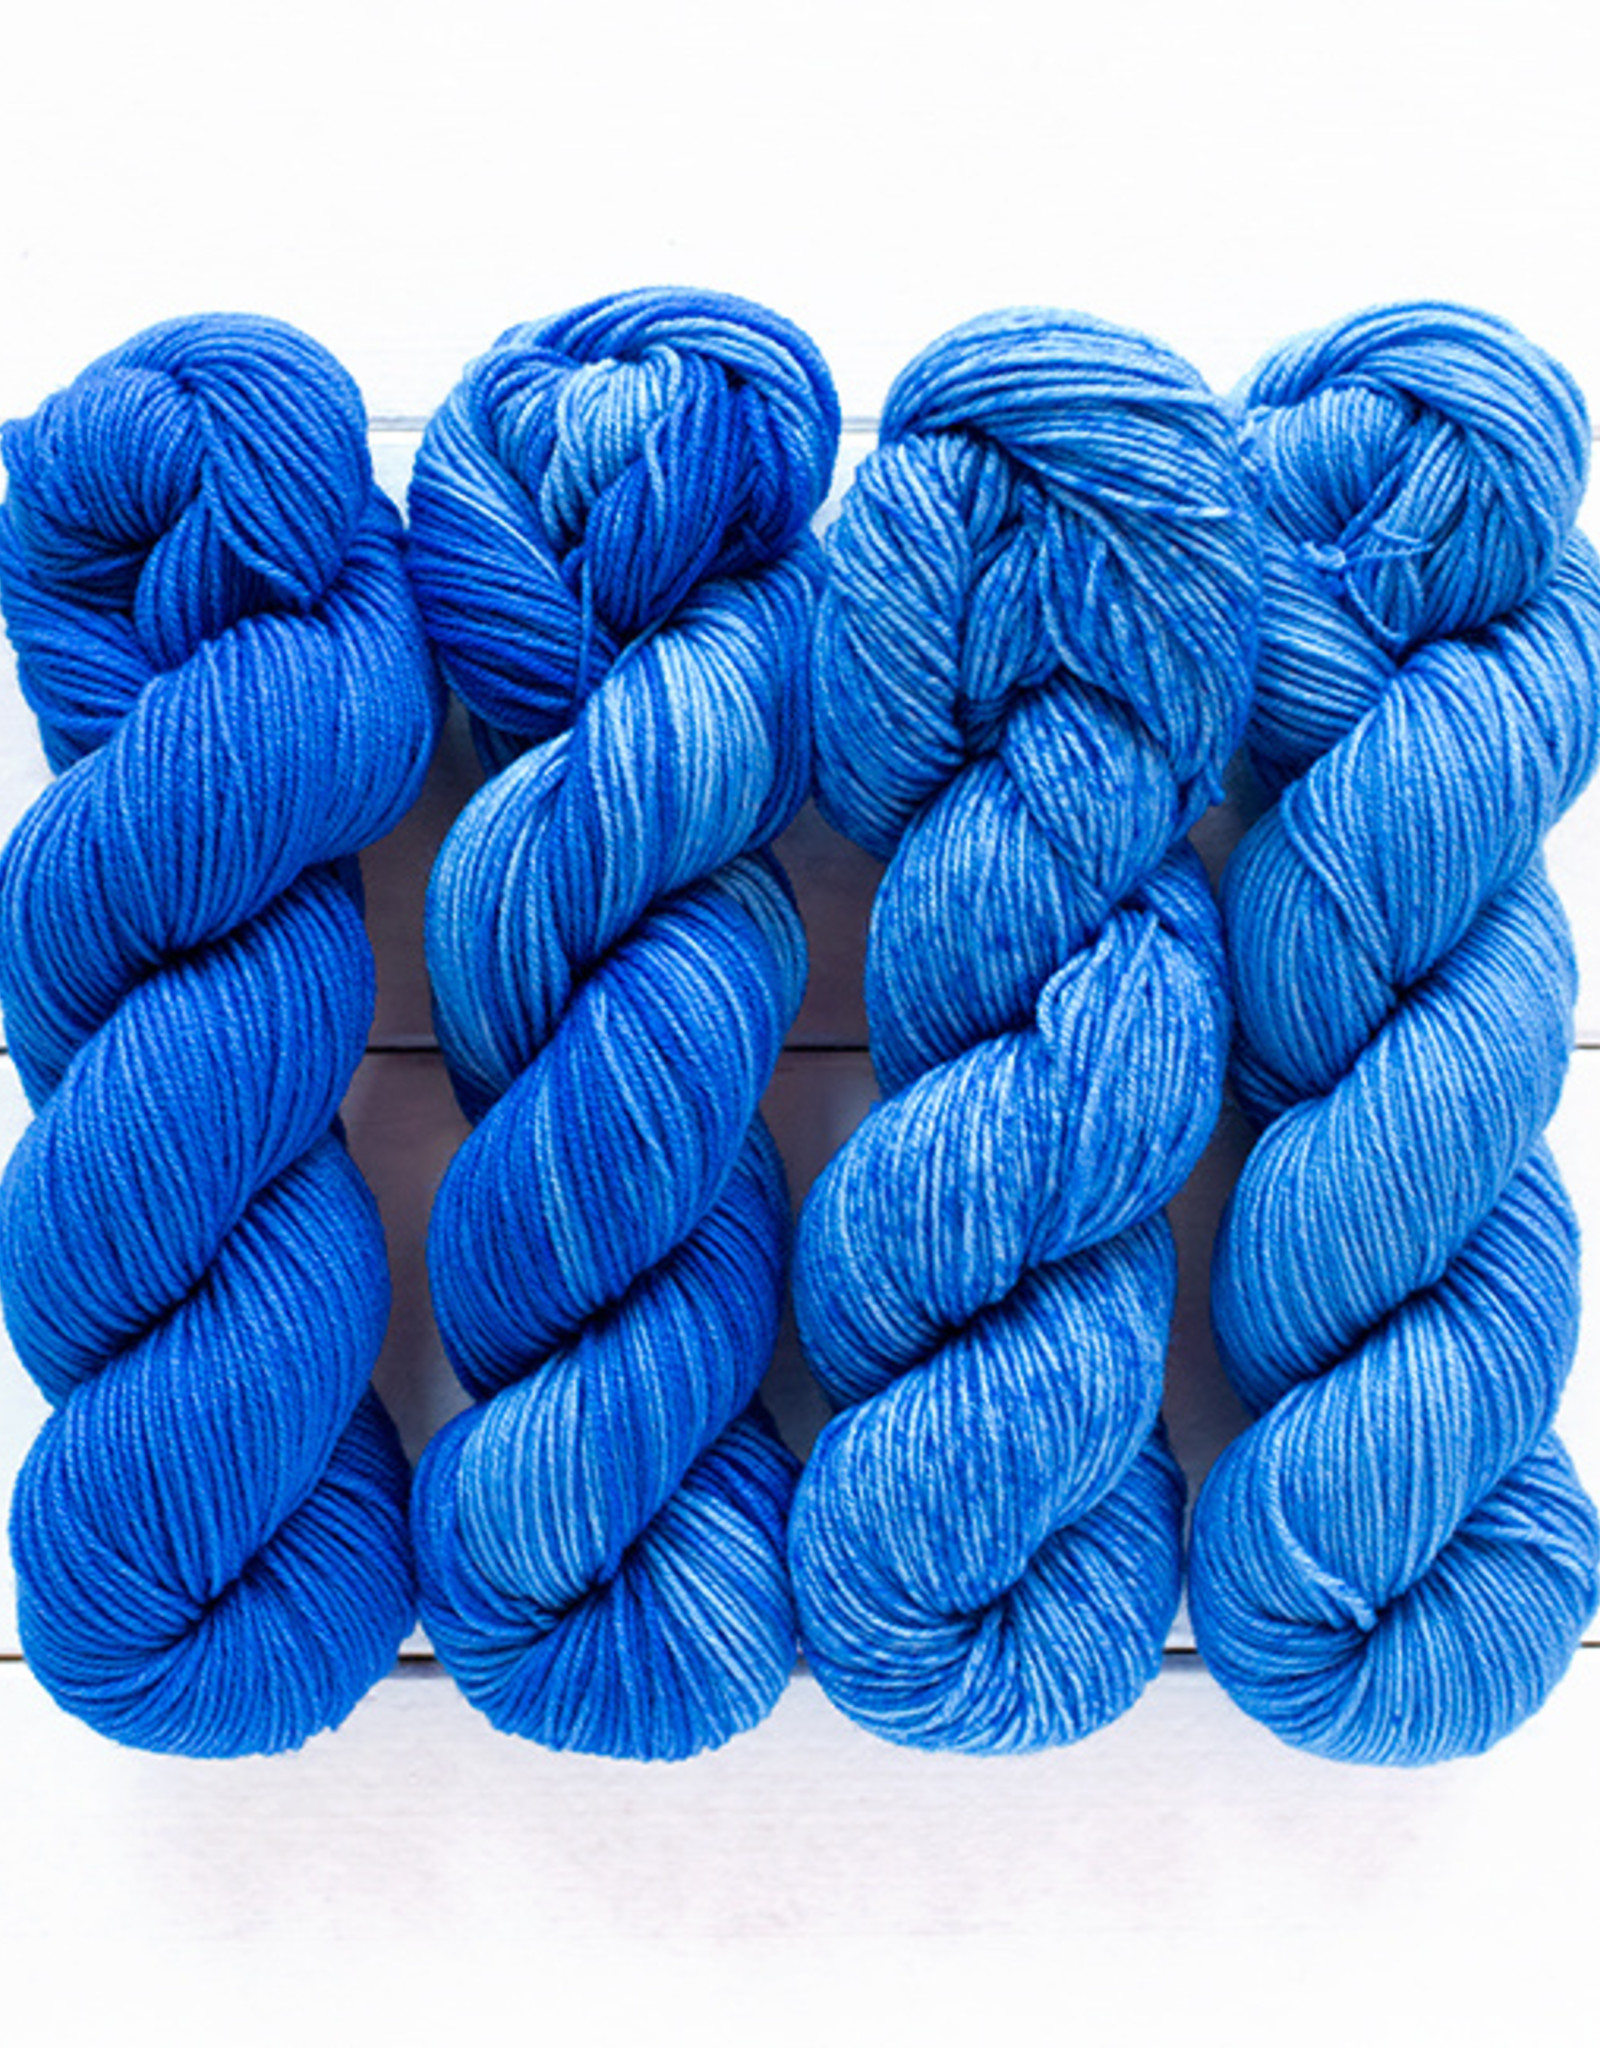 Urth Yarns Gradient Kit